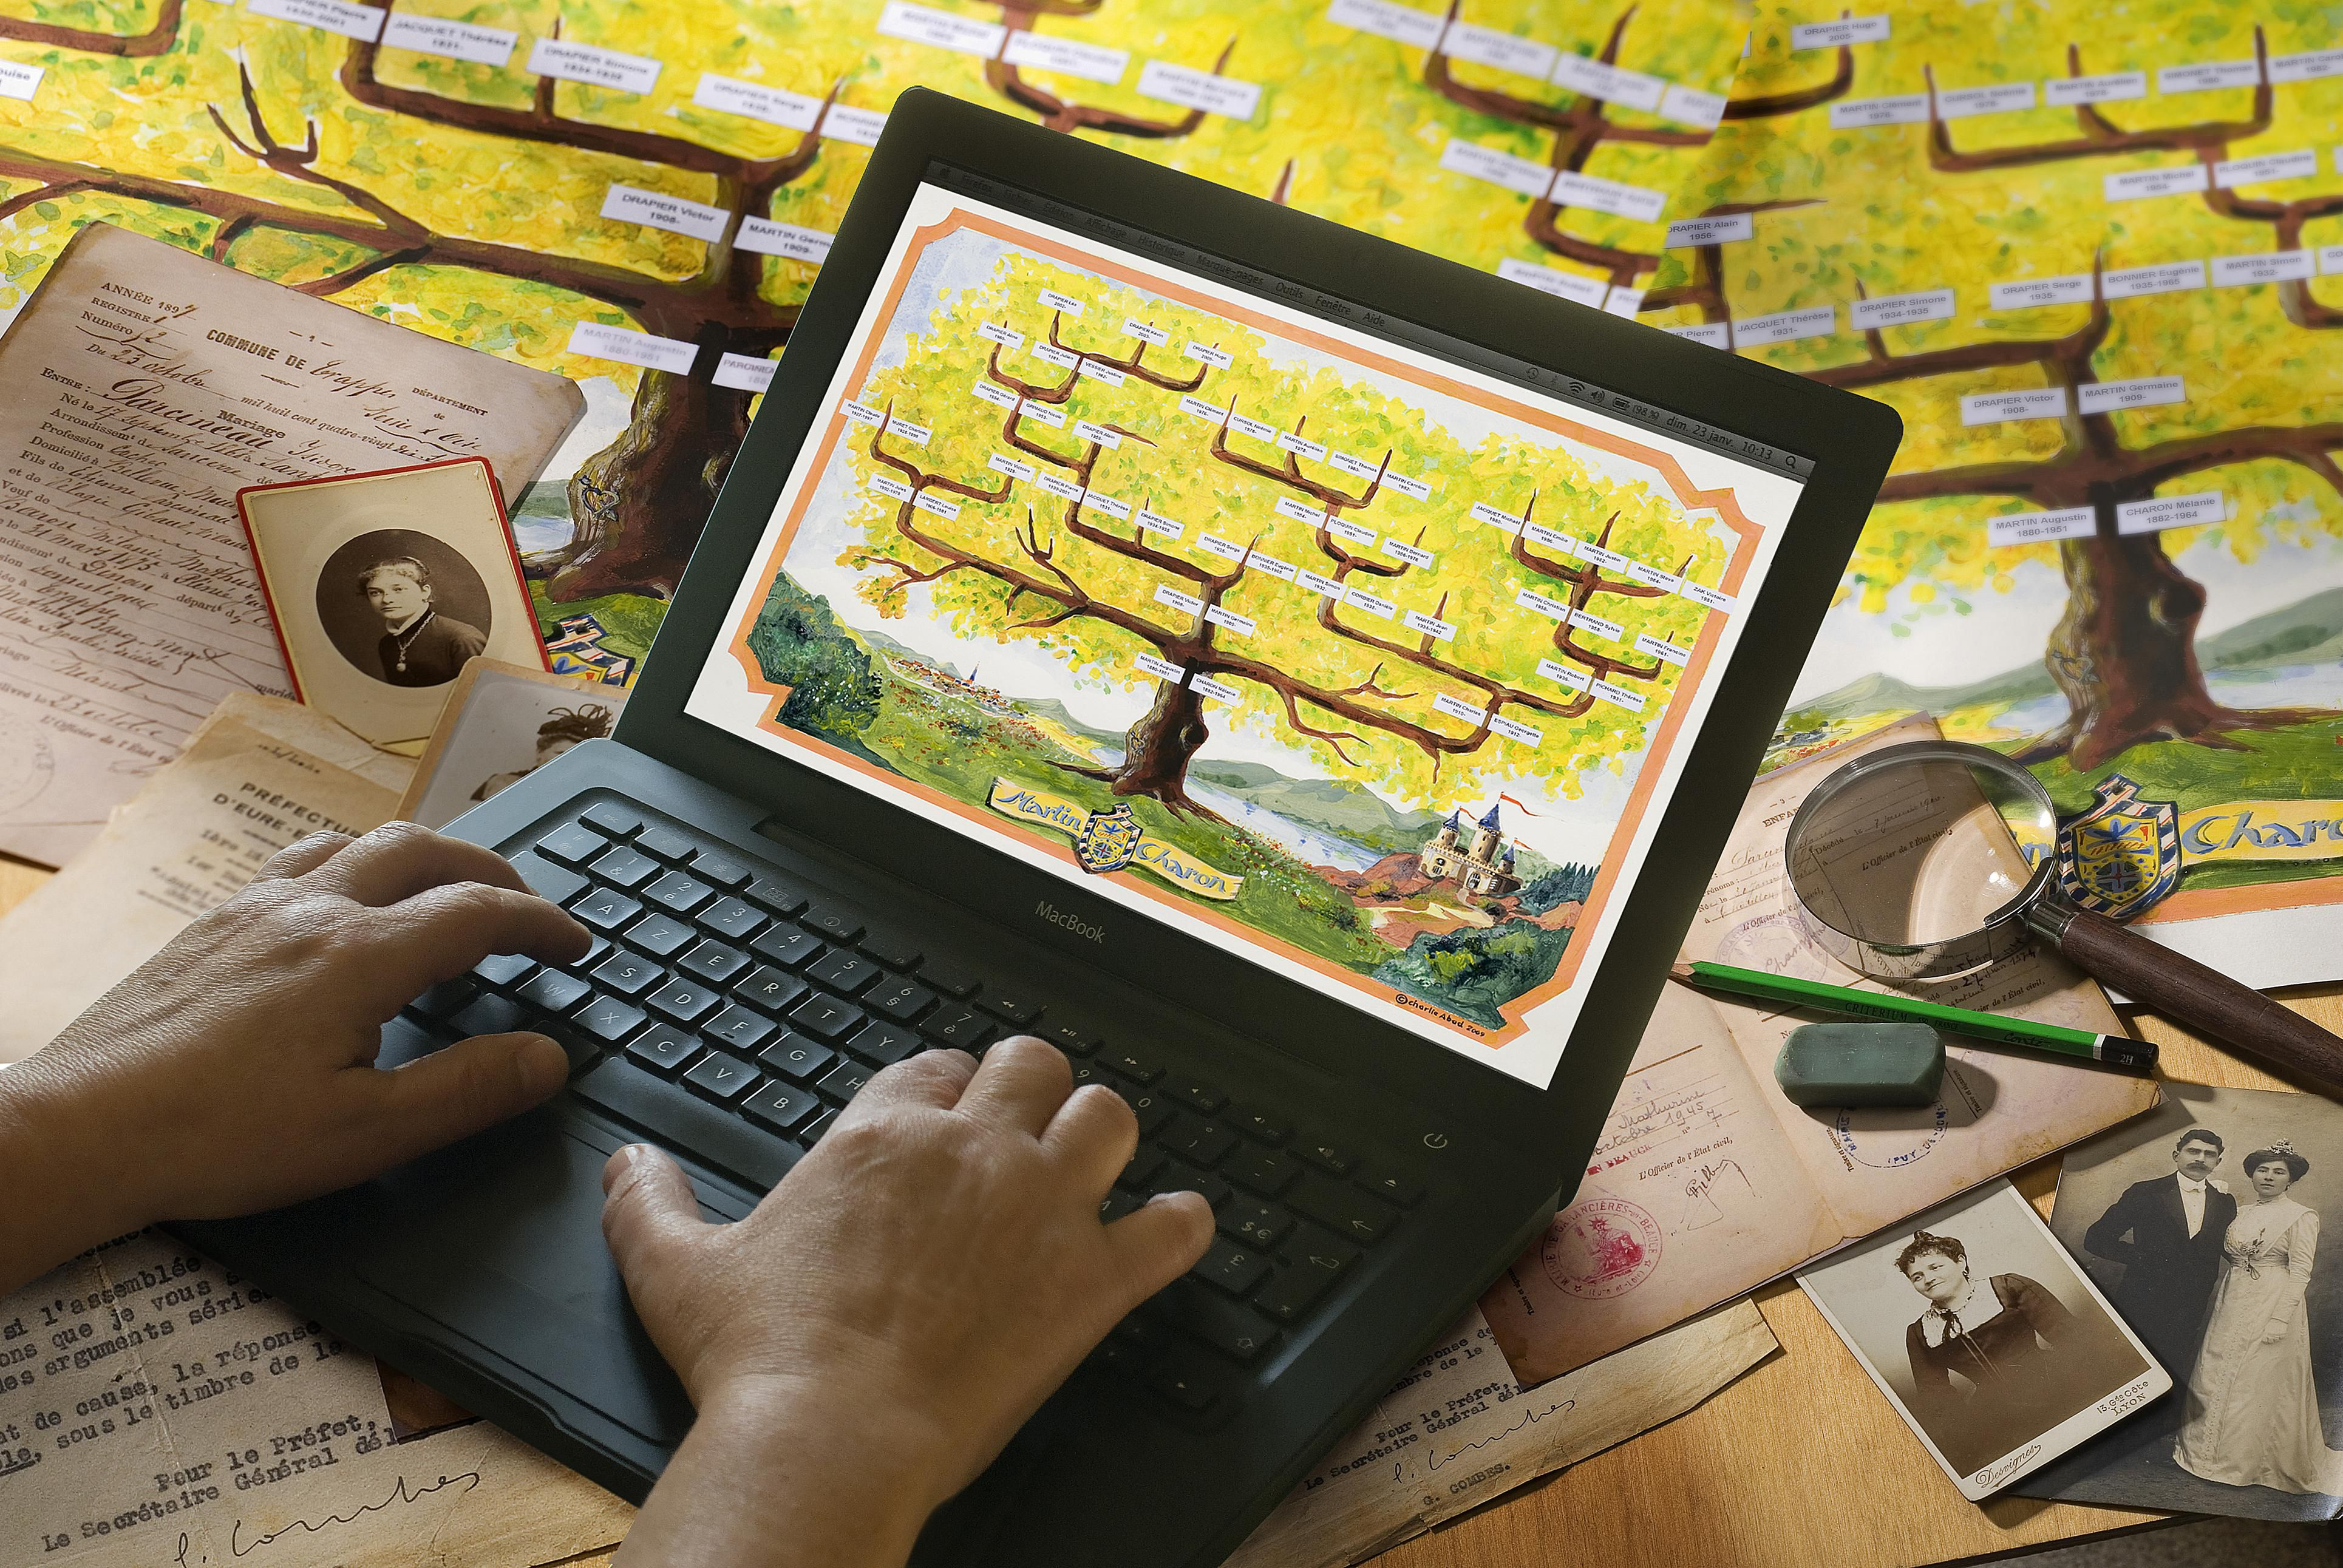 Person working on Family Tree document on laptop computer